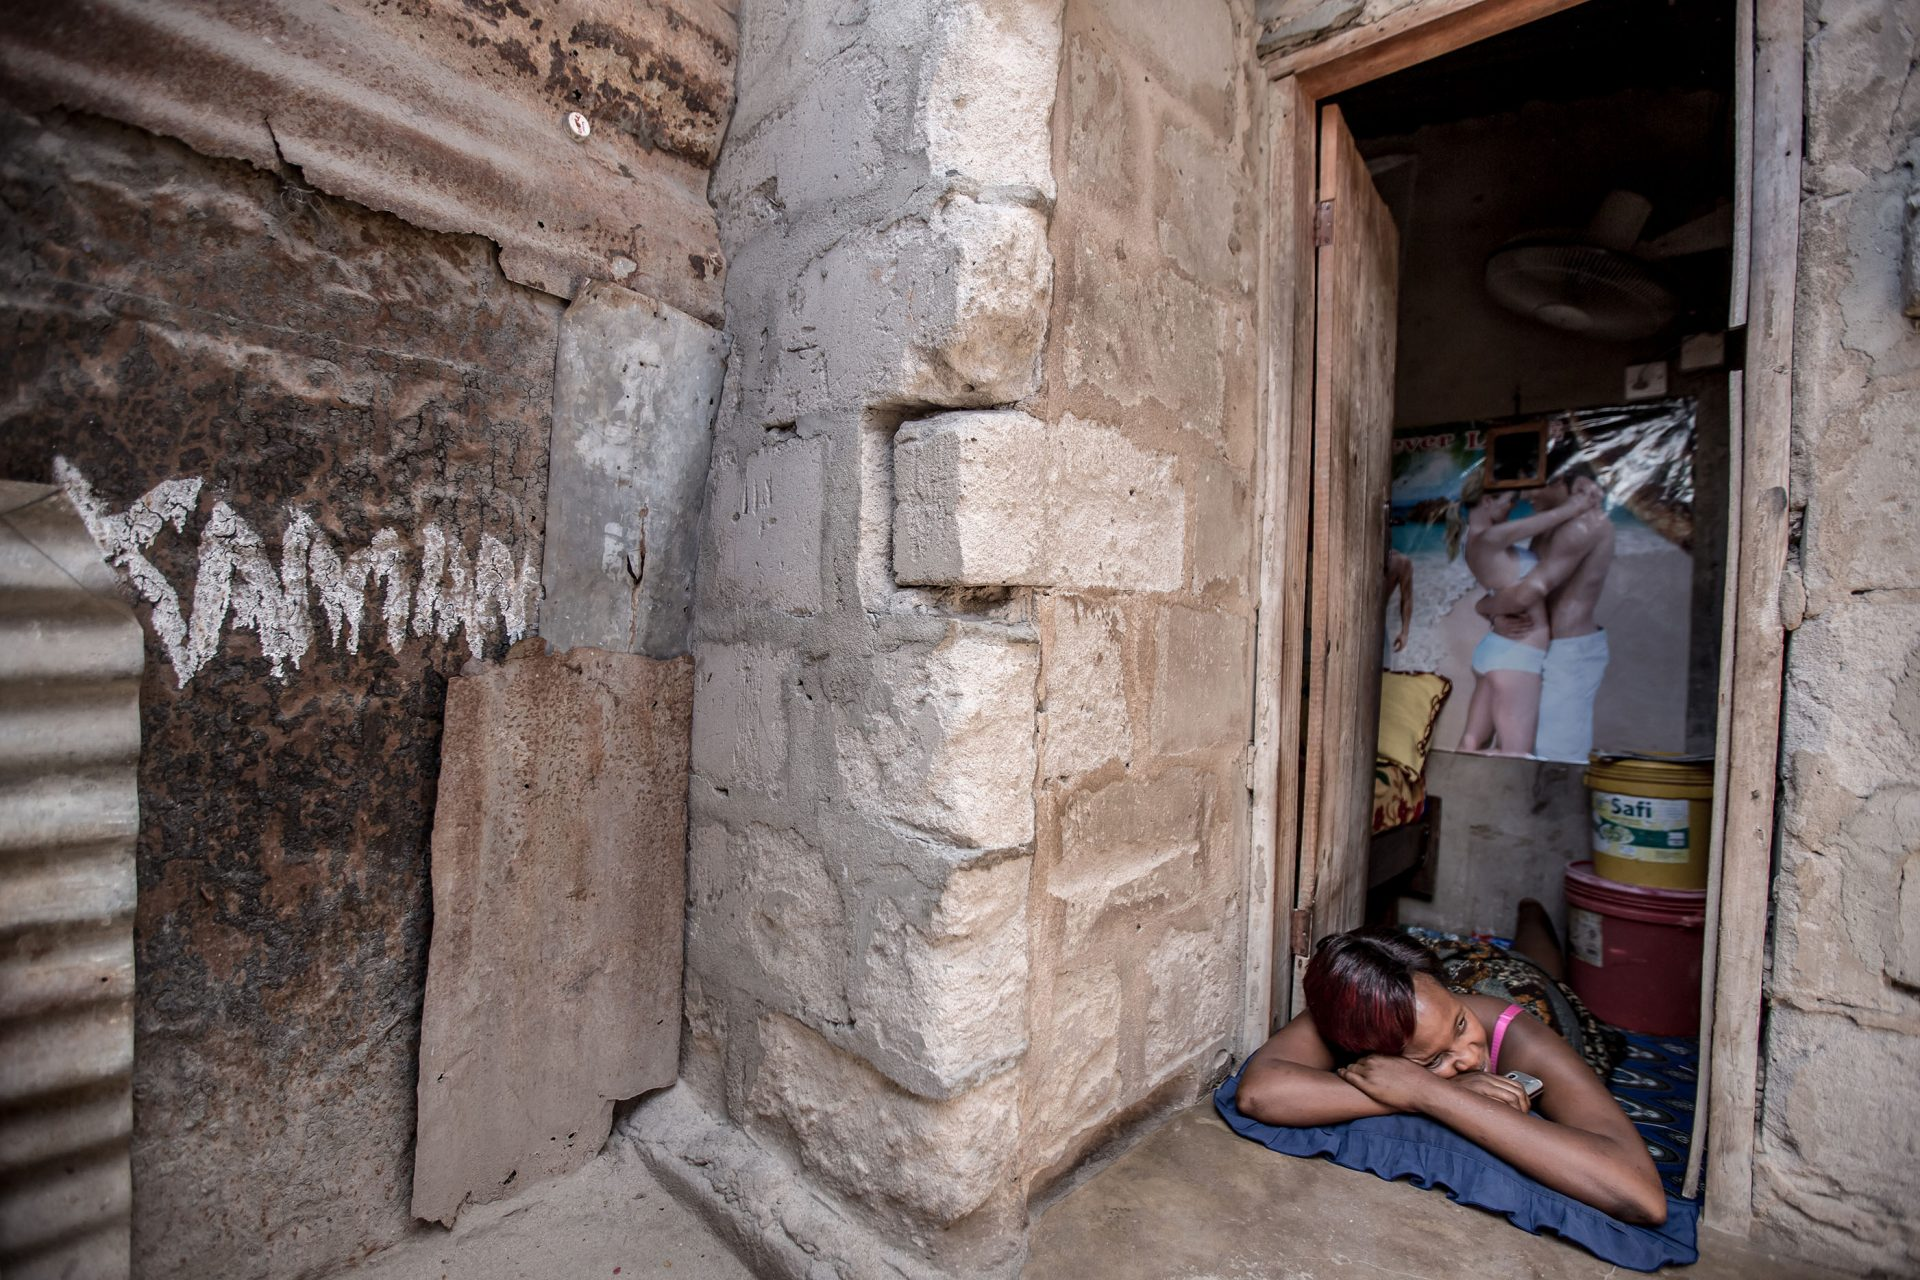 A young woman relaxes in the doorway of her bedroom. This is the same room where she accommodates her clients, as well as lives with her baby, sleeps and eats. In downtown Dar Esalaam, Tanzania, community health workers offer free HIV testing in brothel